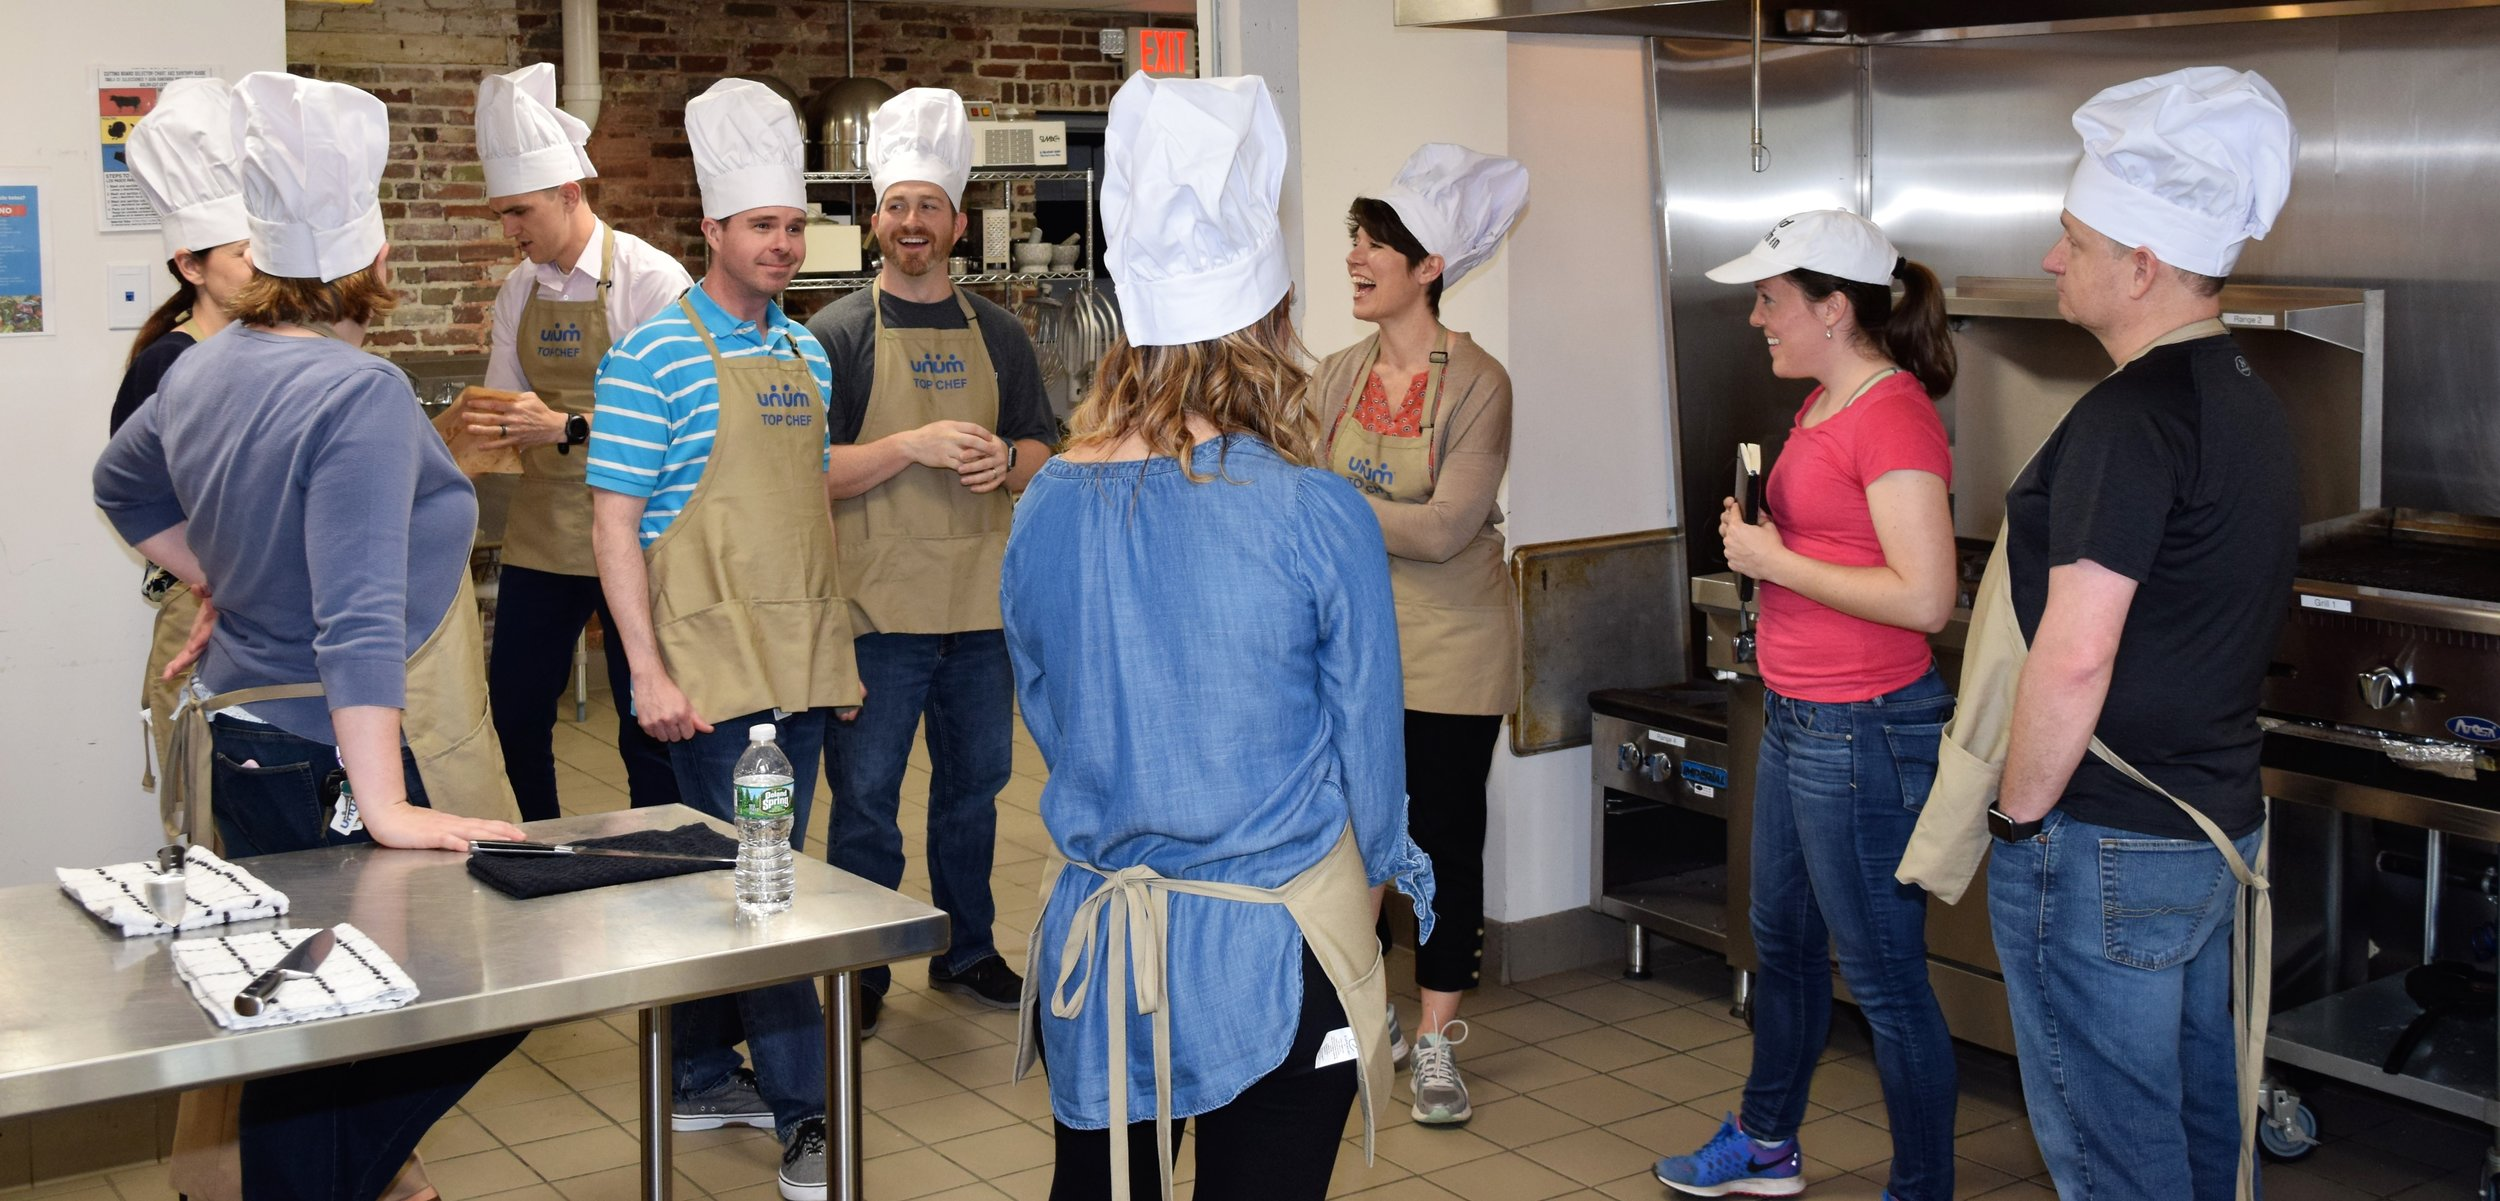 Team building group laughing before cooking competition